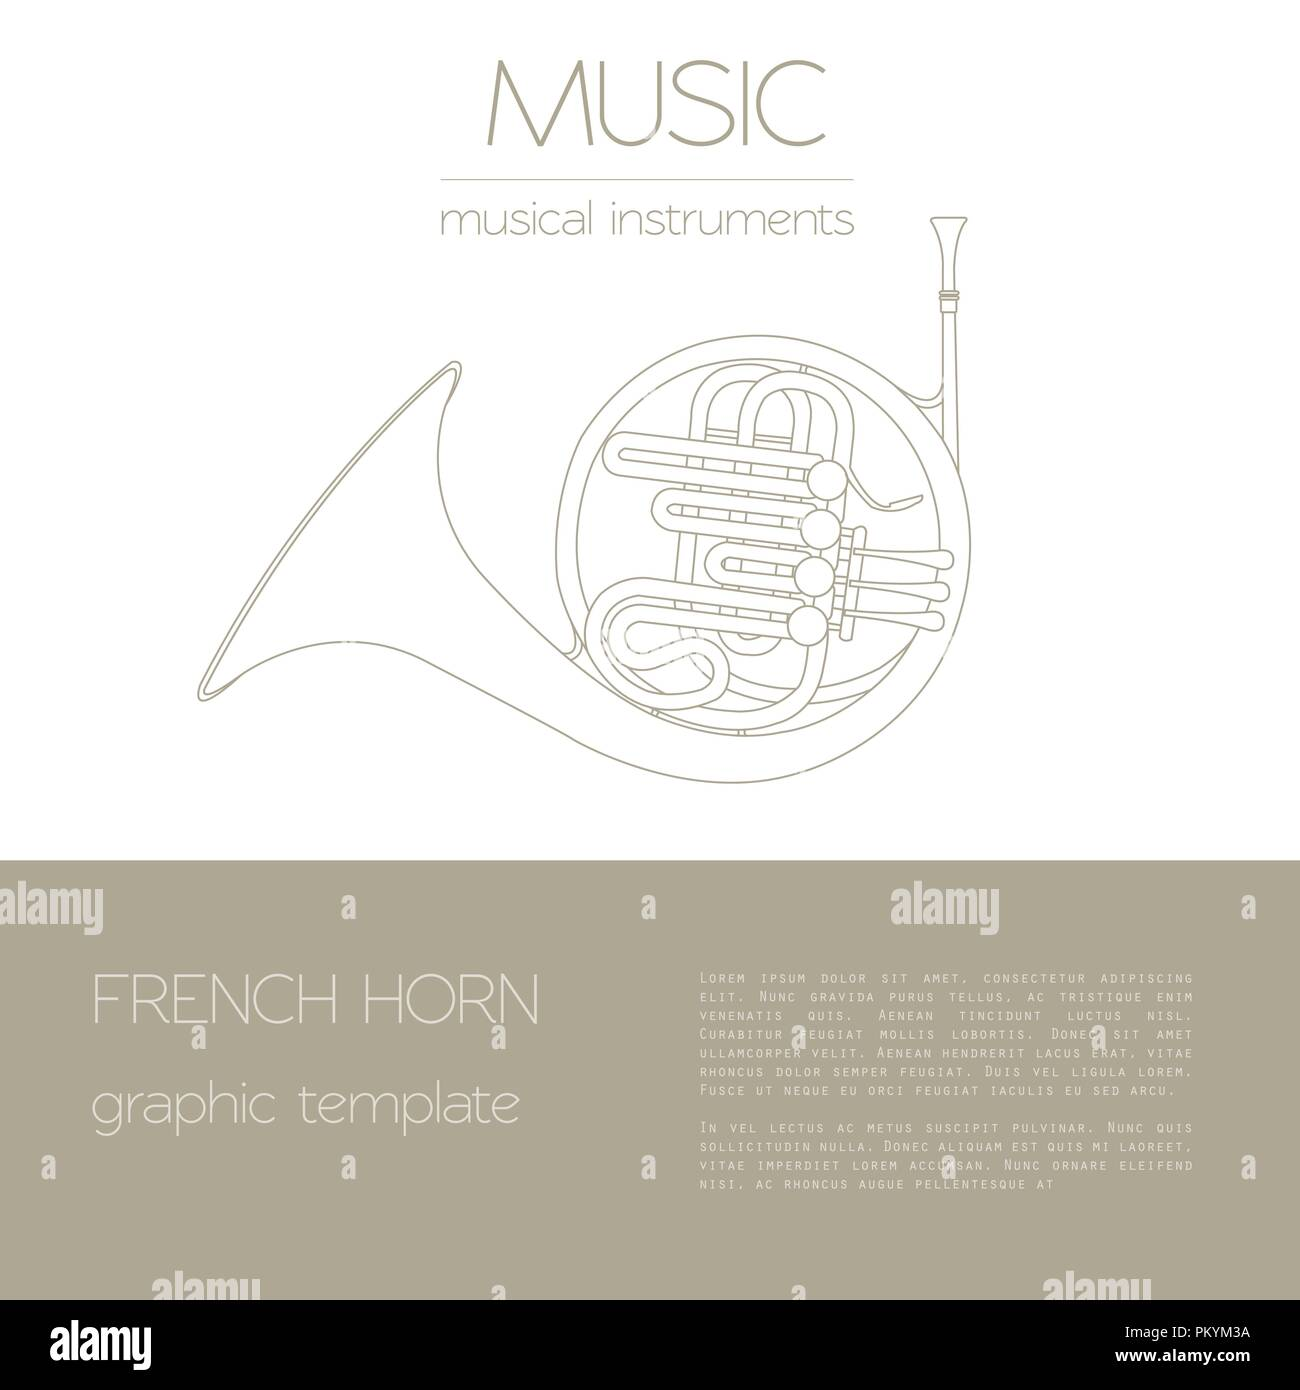 hight resolution of musical instruments graphic template french horn vector illustration